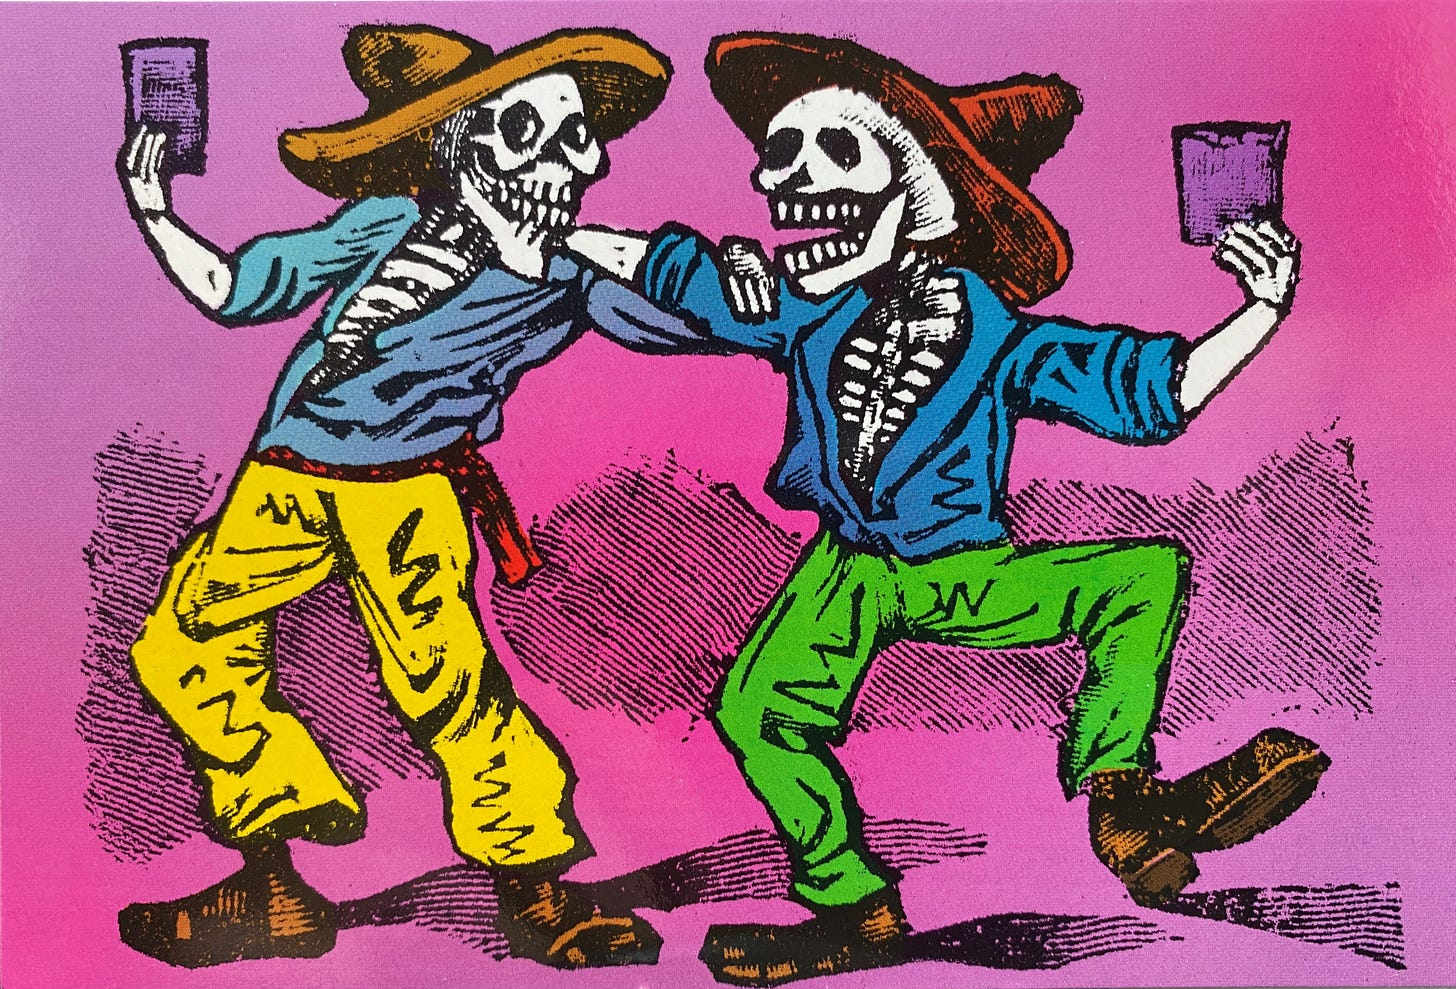 Two skeletons facing each other, both wearing sombreros, long-sleeved button-down shirts, pants and shoes. They are embracing each other with their left and right arm while holding a cup in their free hand.